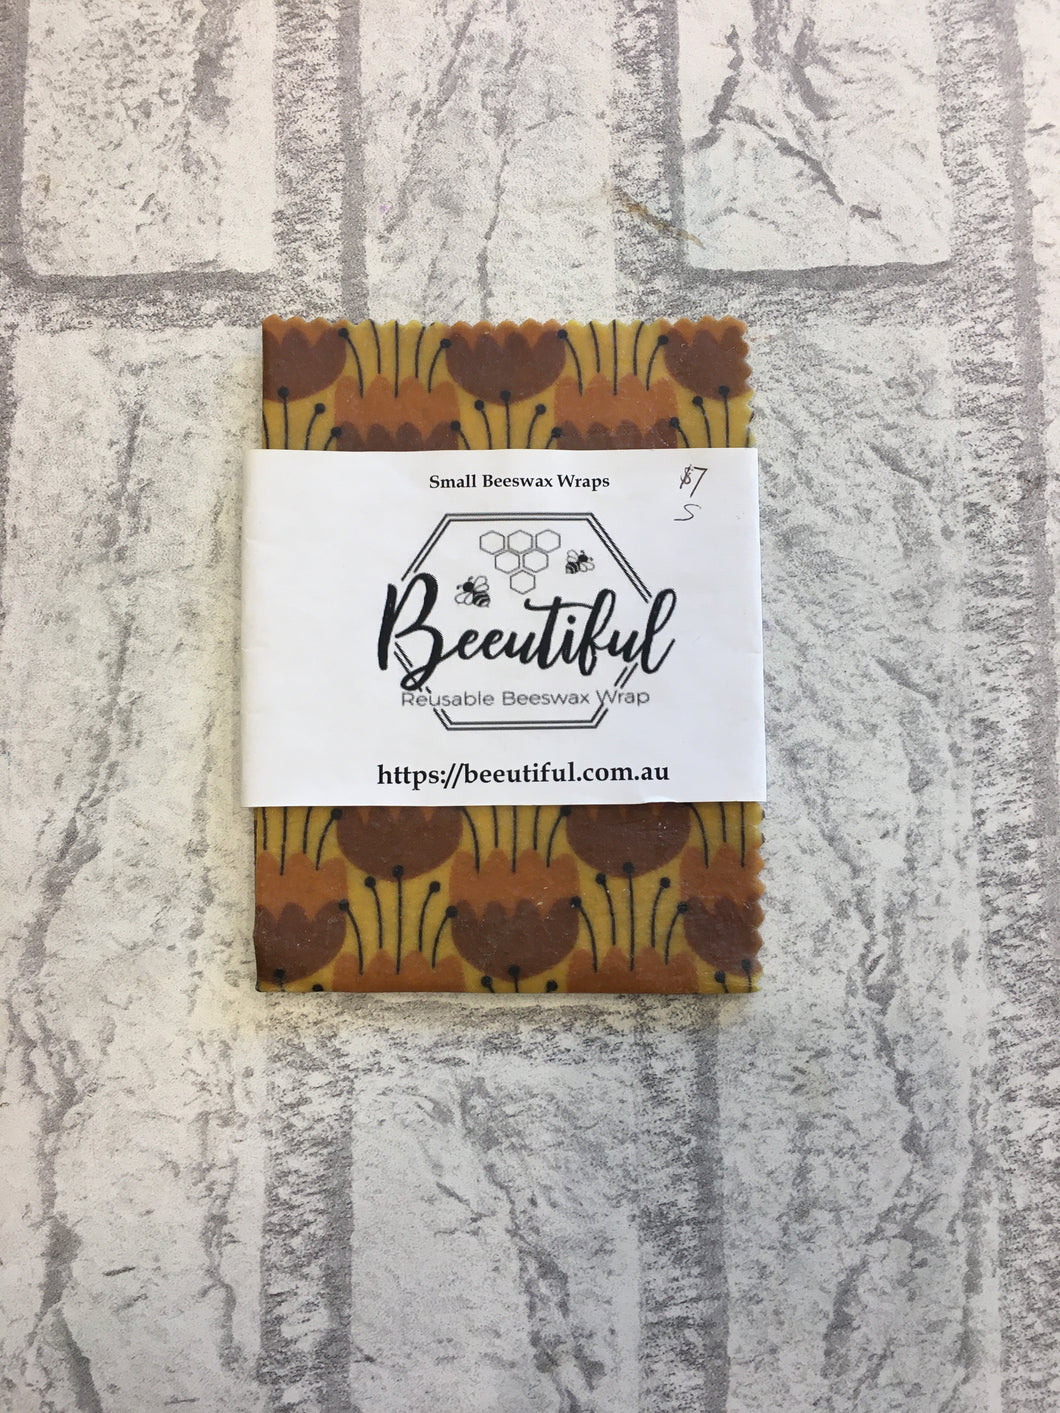 ビー ワックス ラップ Beeswax Wraps (Reusable) Small x 1